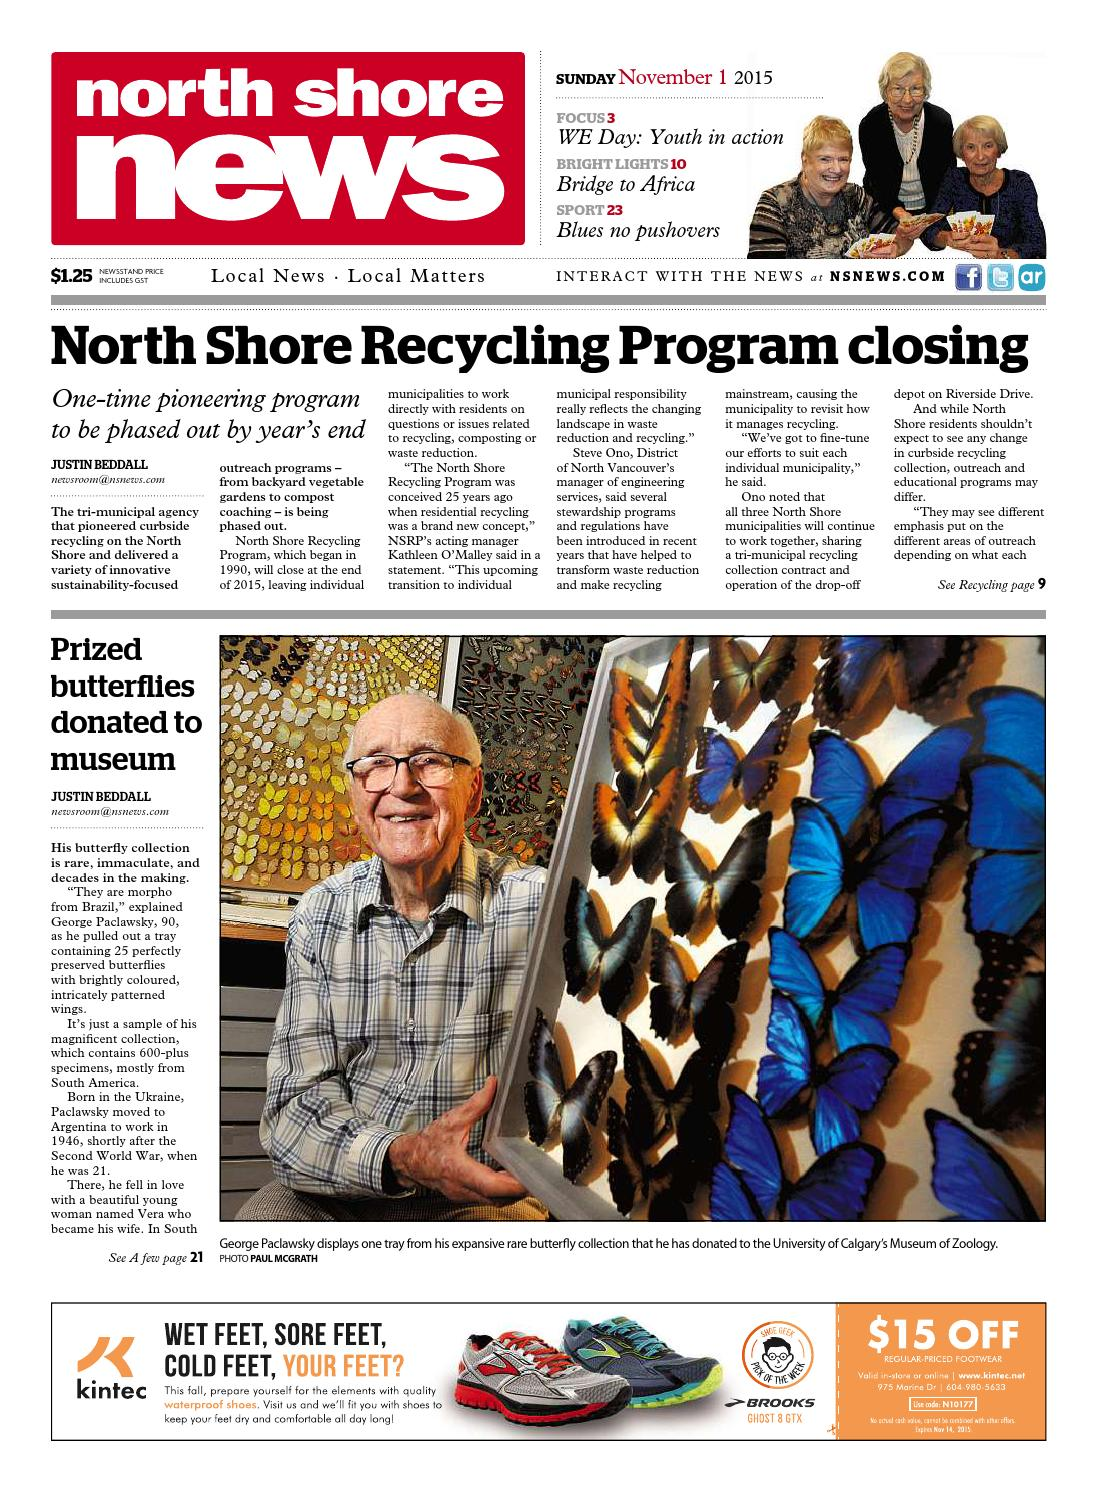 e95622f267c7 North Shore News November 1 2015 by North Shore News - issuu